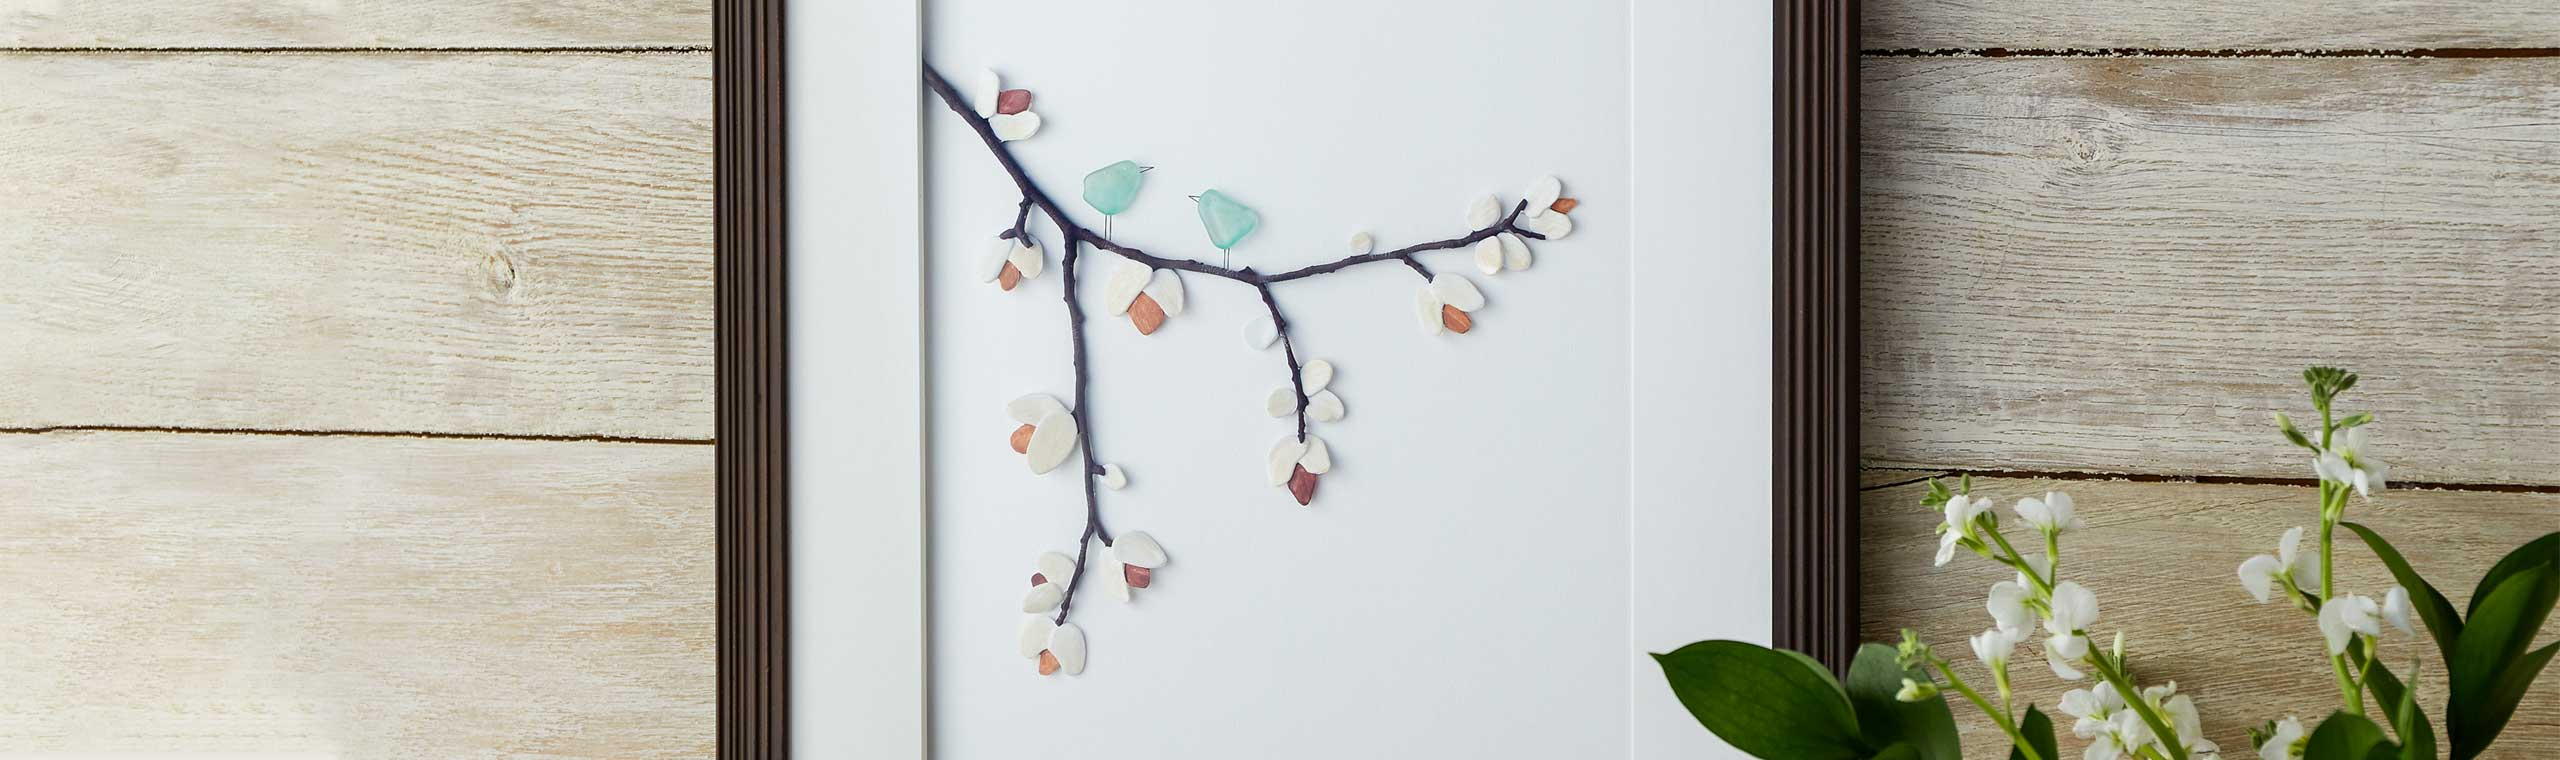 Wall art frames with little stones that make u a picture of birds on a branch